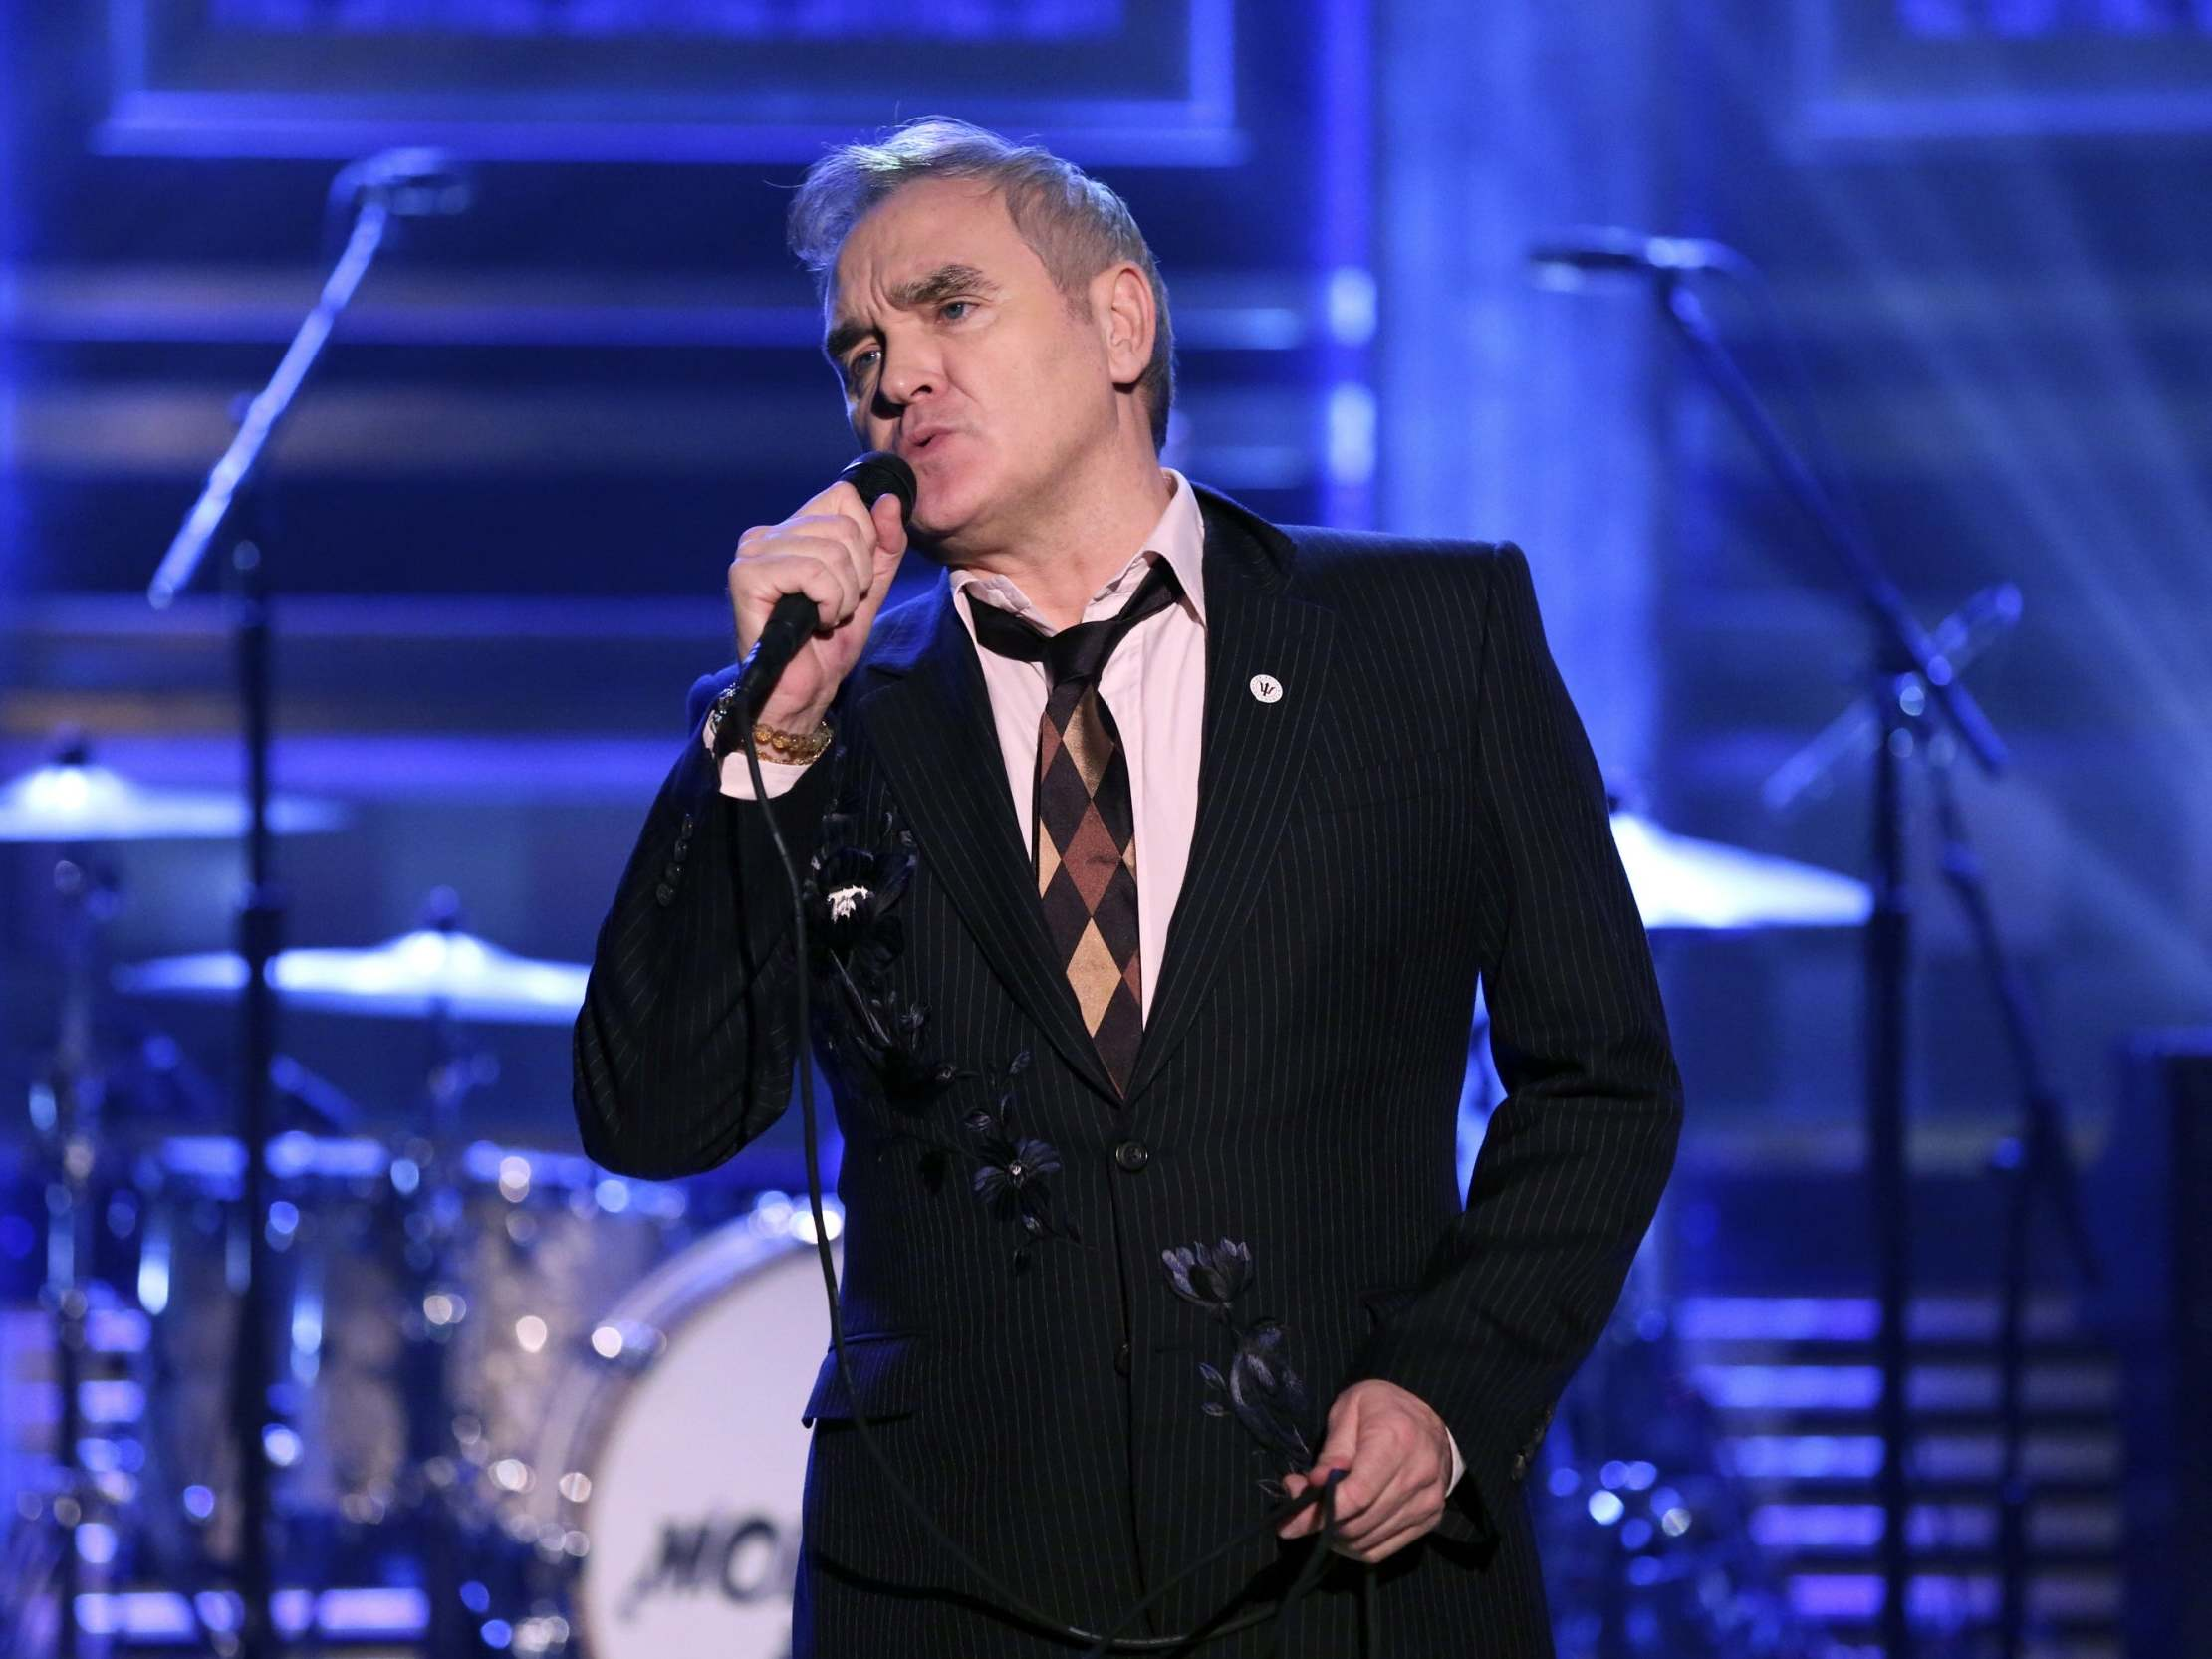 Morrissey calls for end to 'Soviet Britain' and 'totalitarian control'